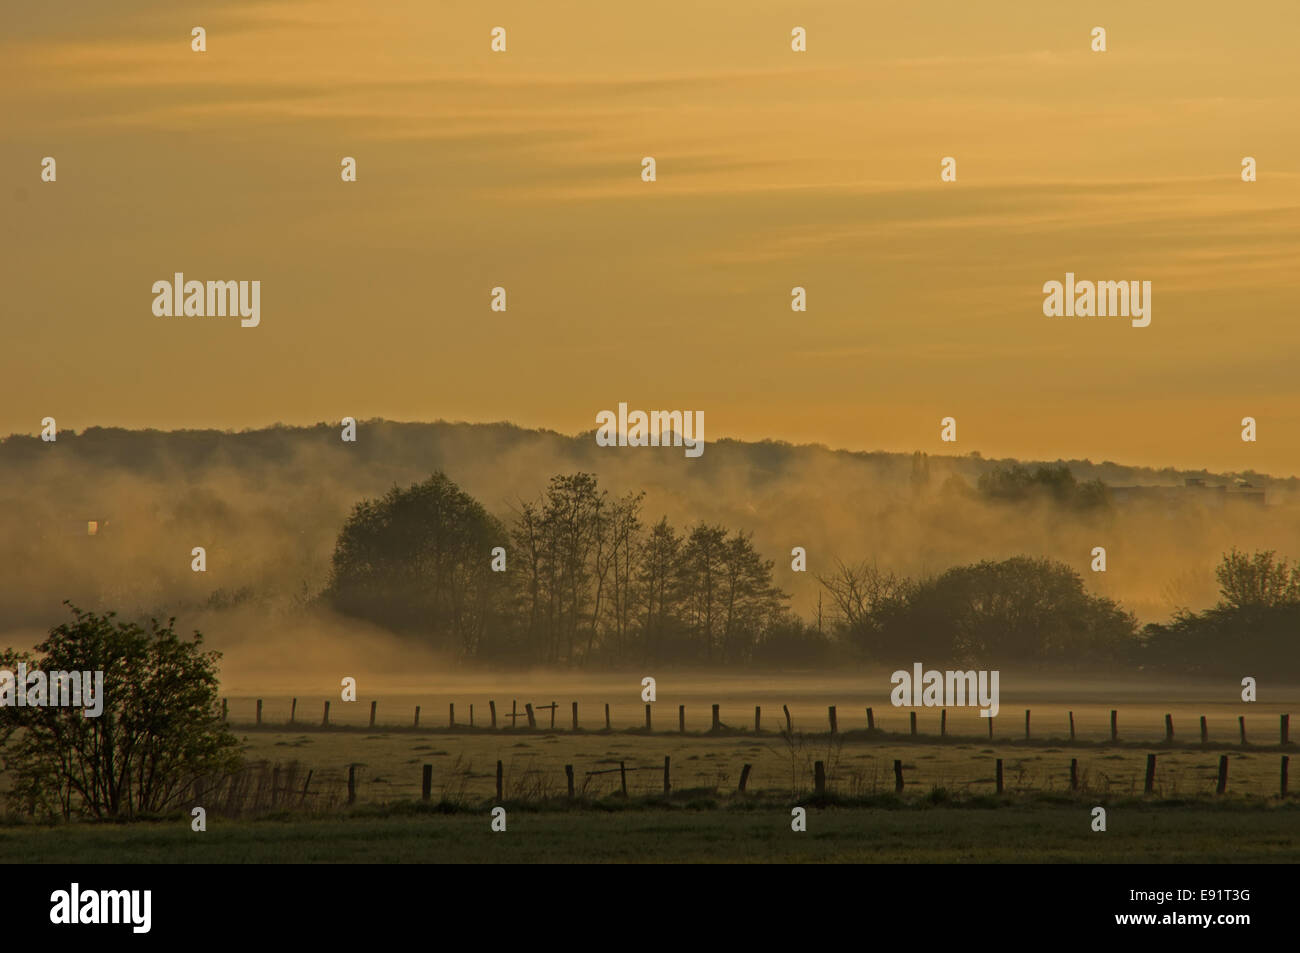 Morning spirit with waft of mist Stock Photo